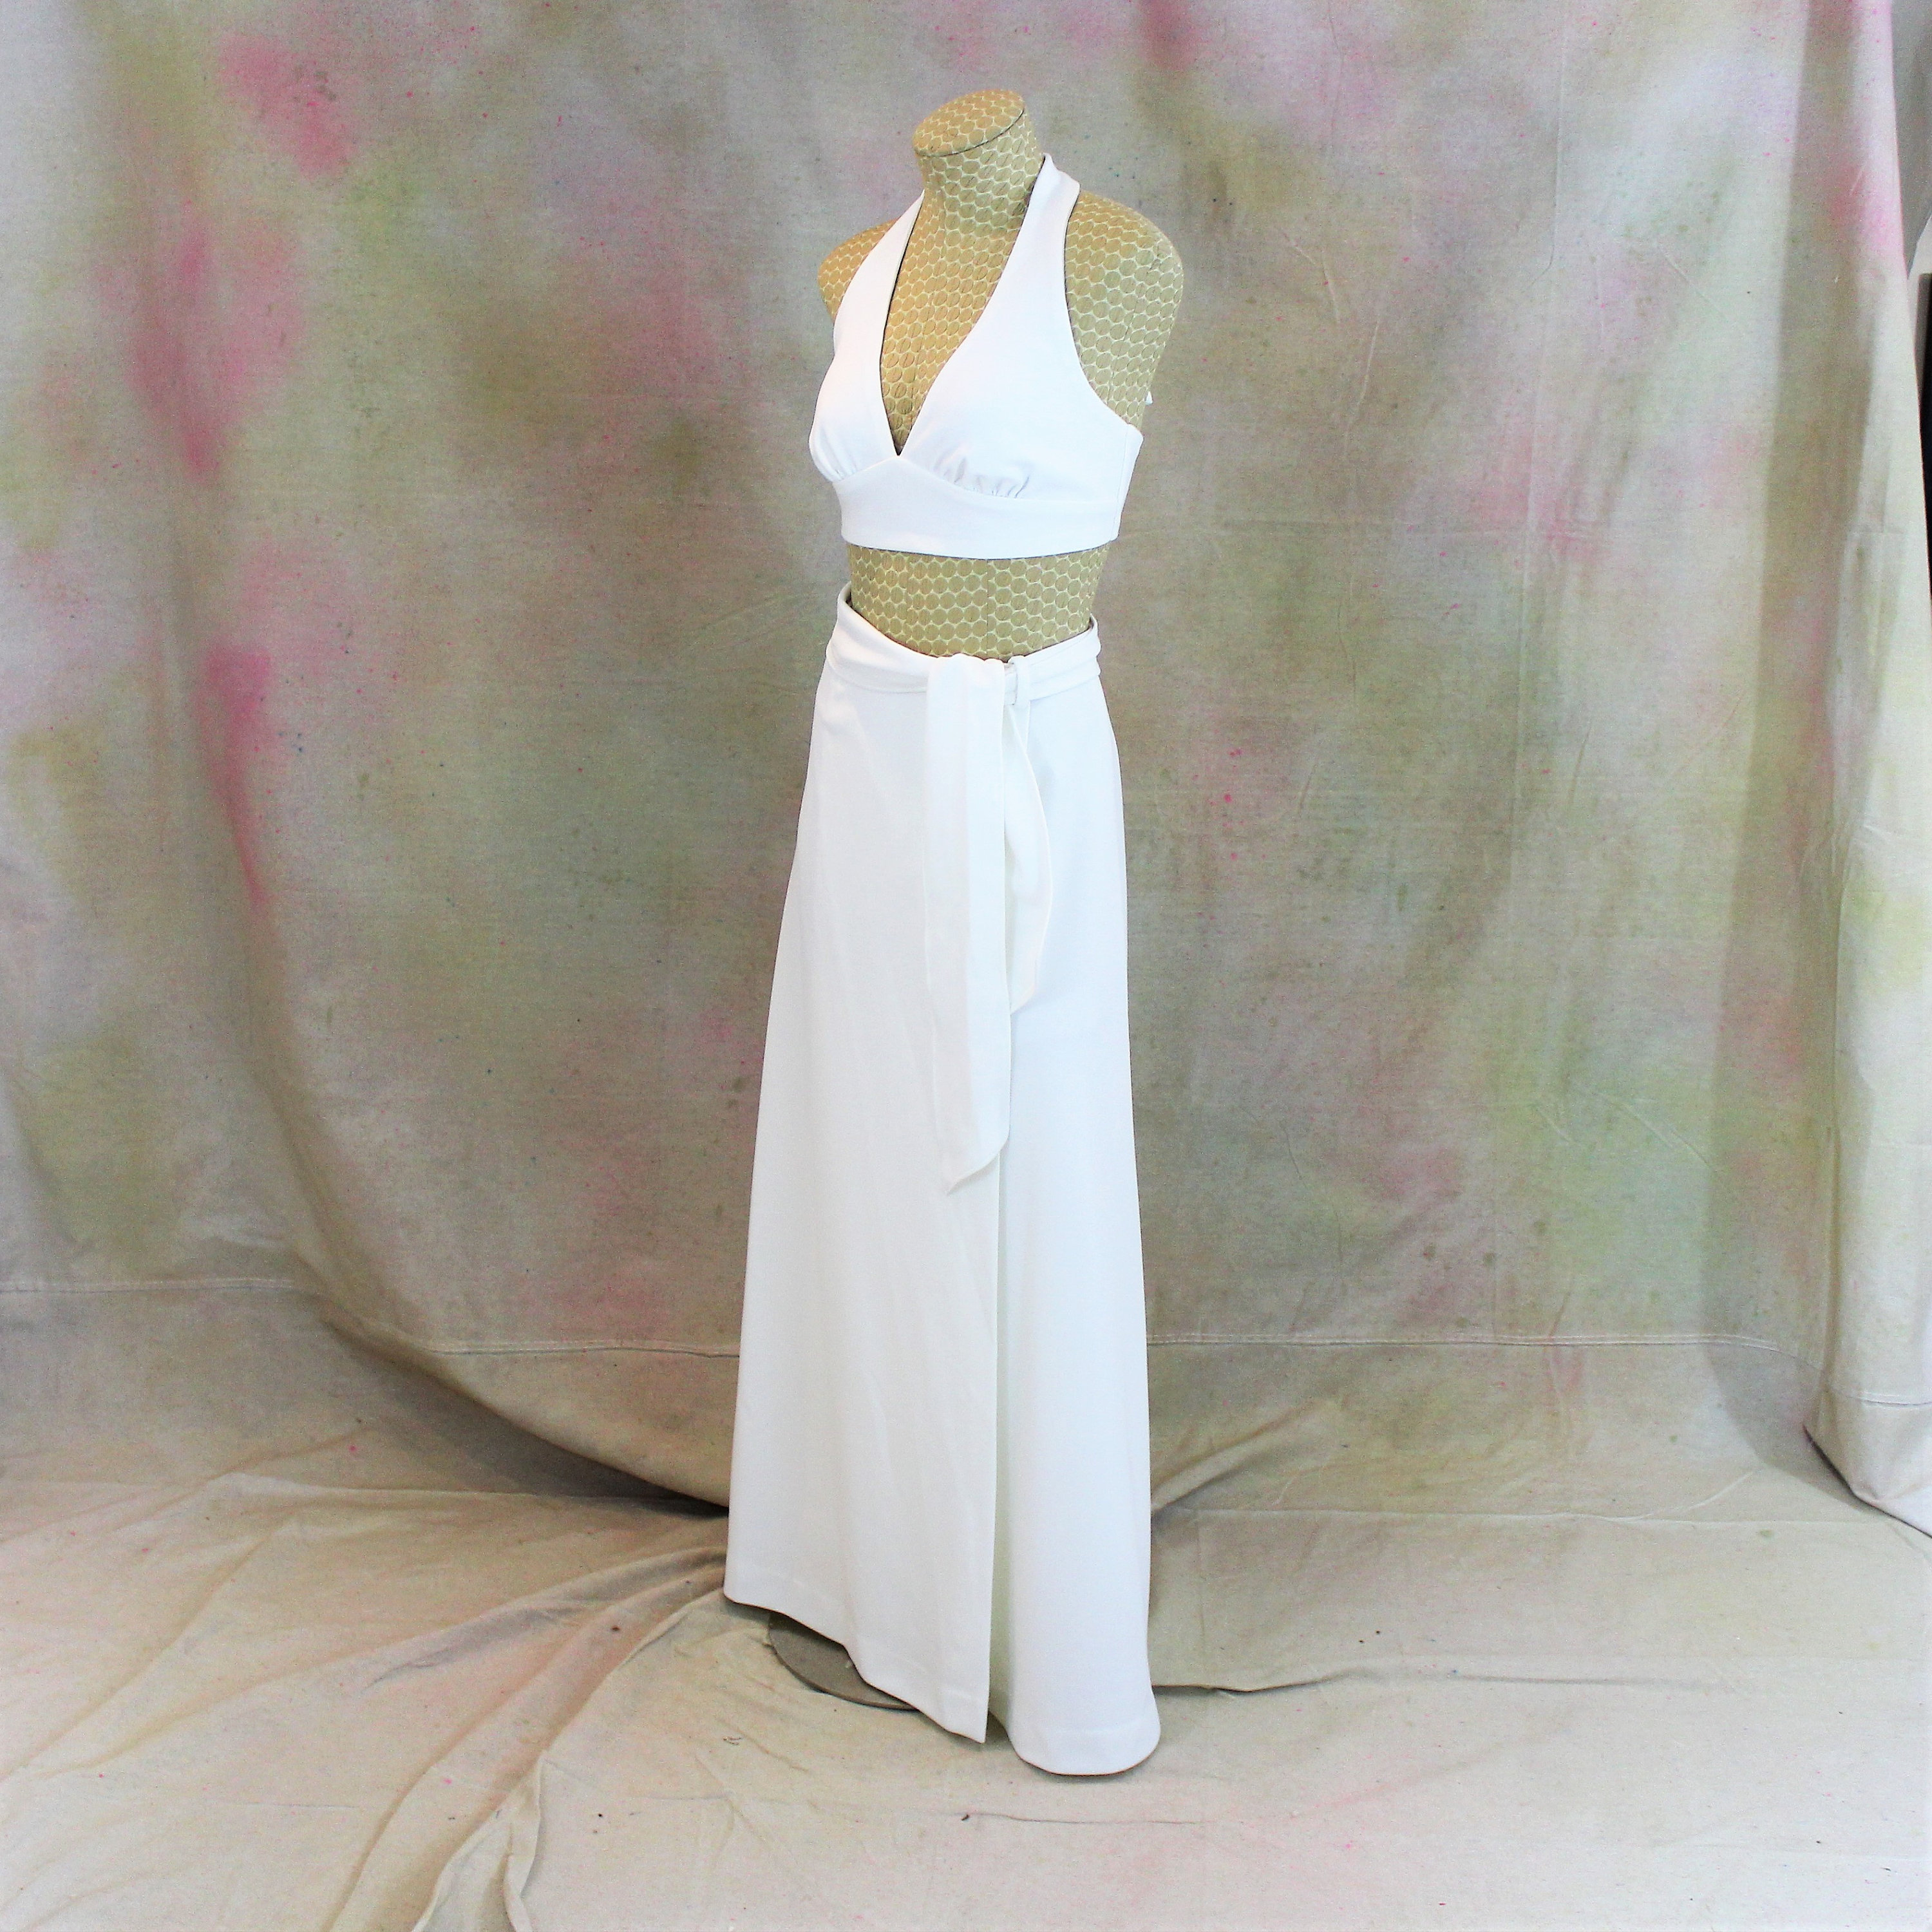 6c27bffee5 1970 s White Halter Top and Long Wrap Skirt size S. Vintage Open ...